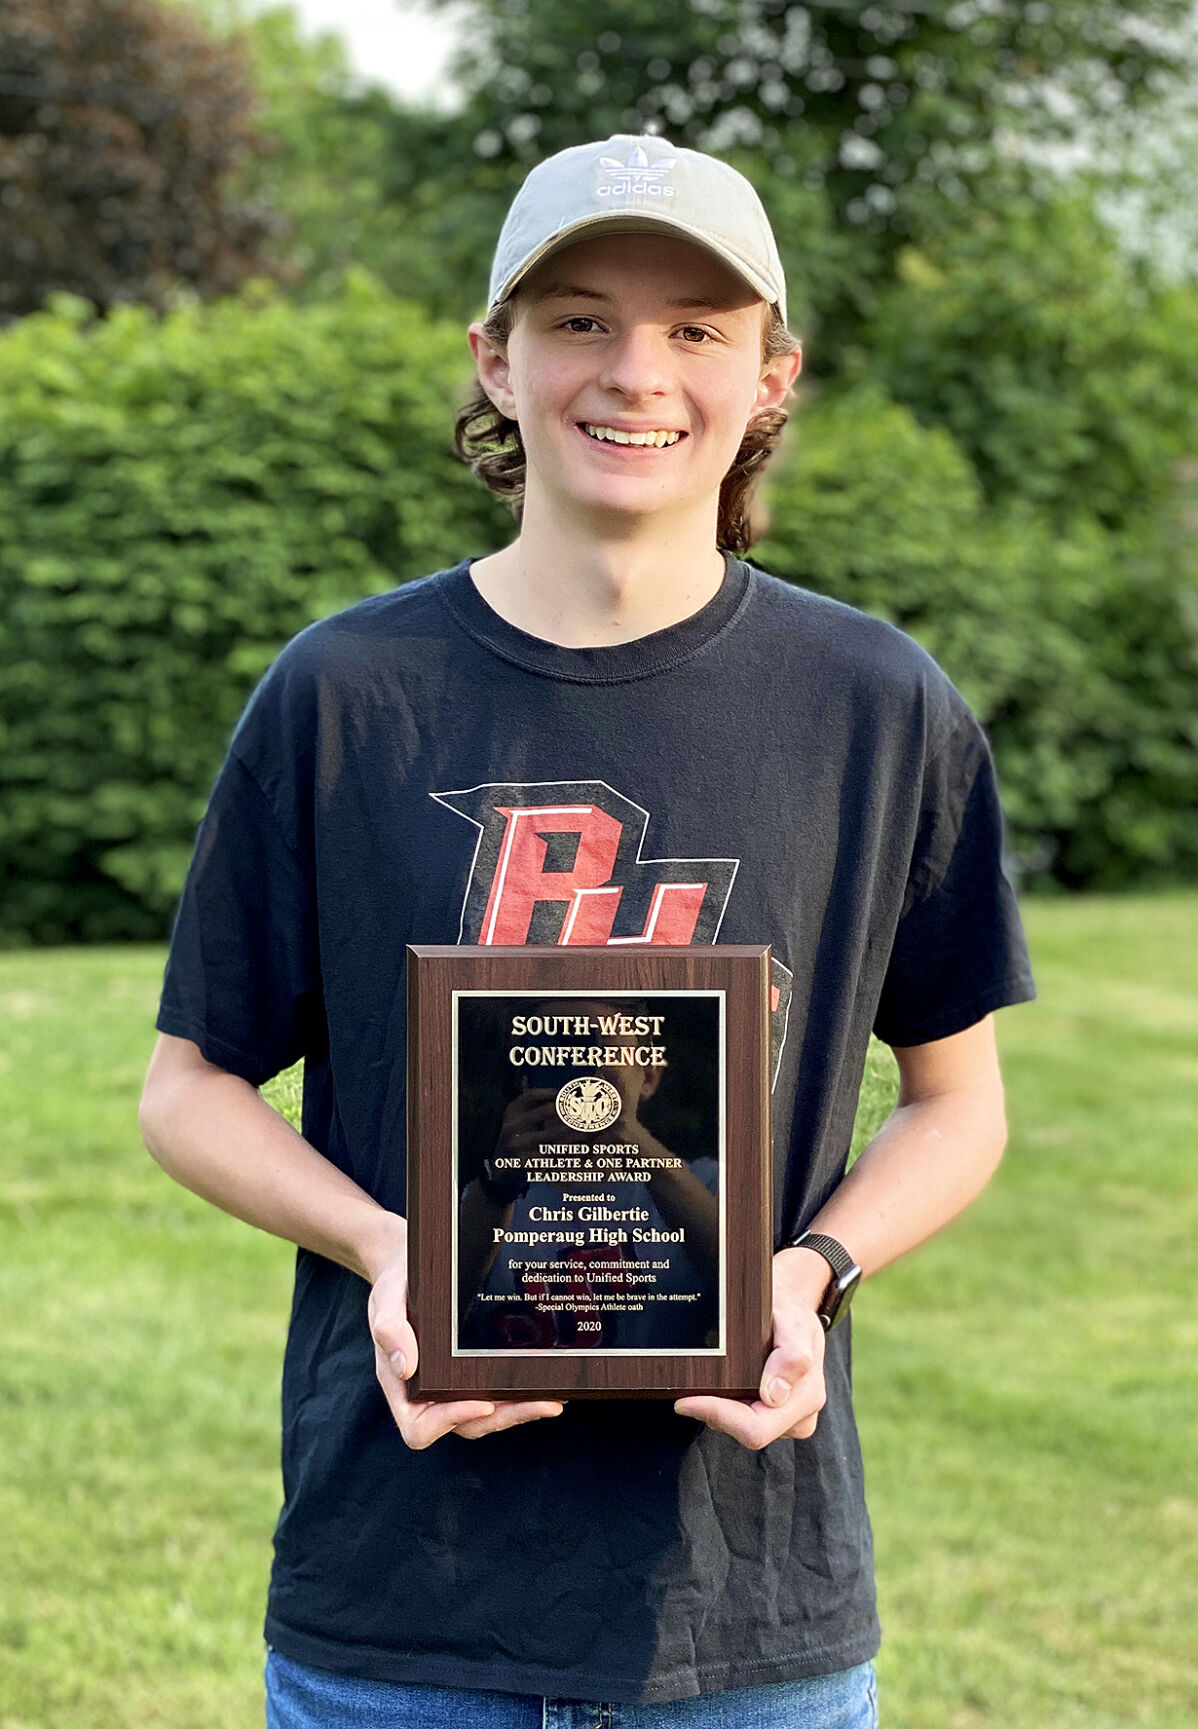 Middlebury-Southbury: Two PHS Students Receive Unified Sports Leadership Awards